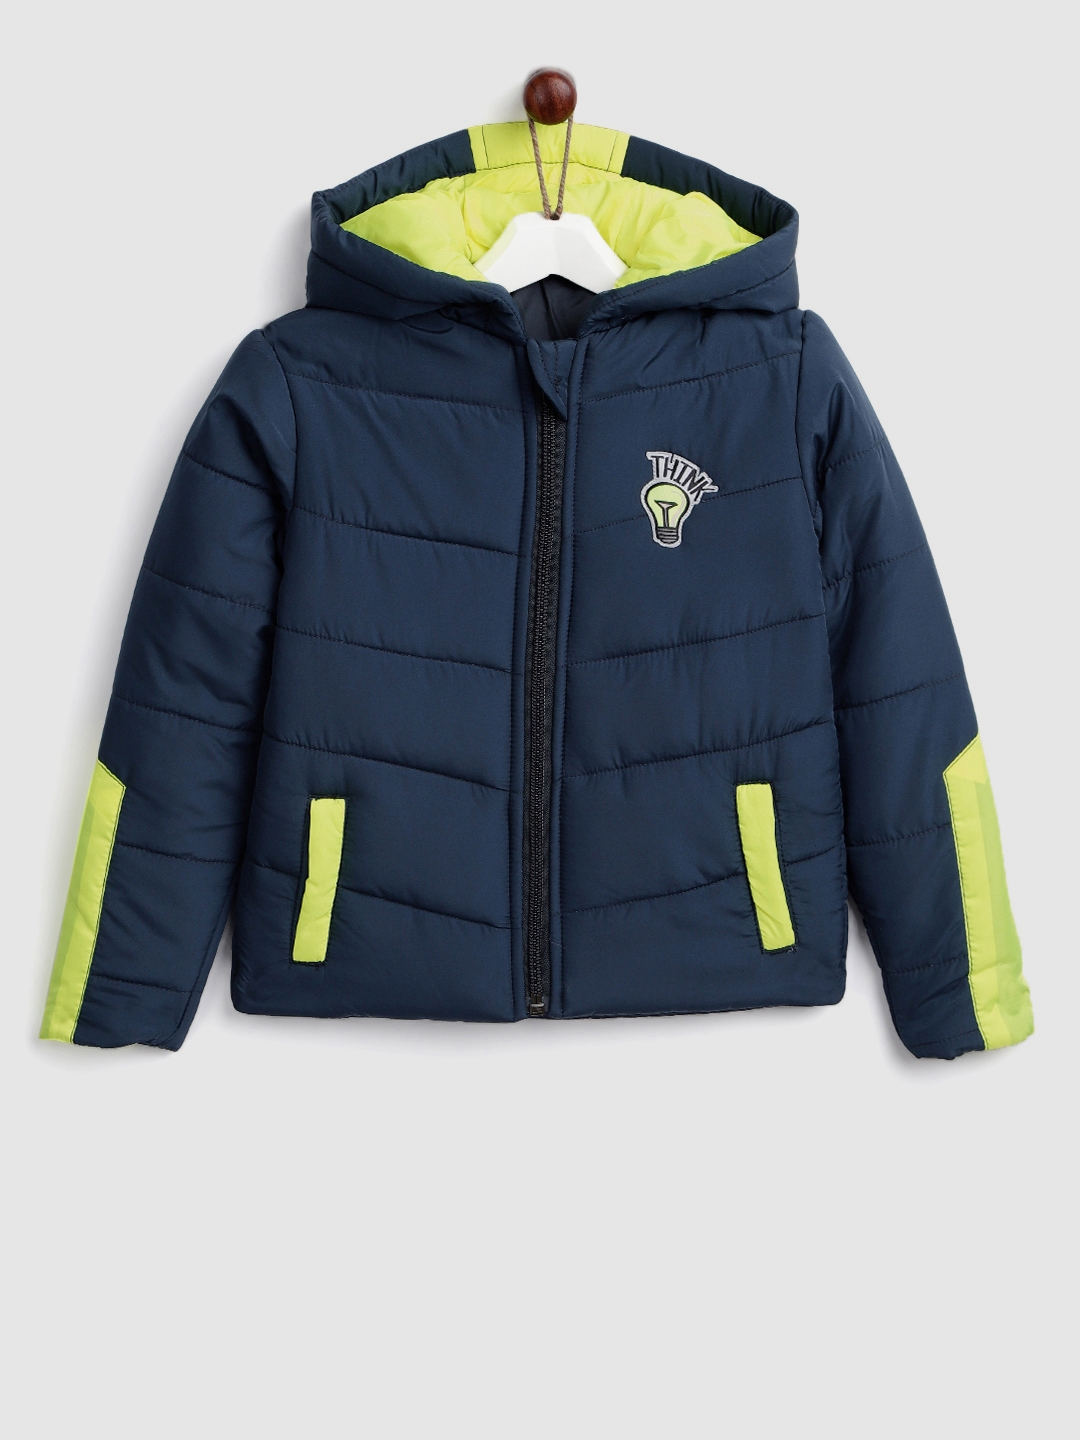 64c209ff5 Buy YK Boys Navy Blue Solid Hooded Padded Jacket - Jackets for Boys ...